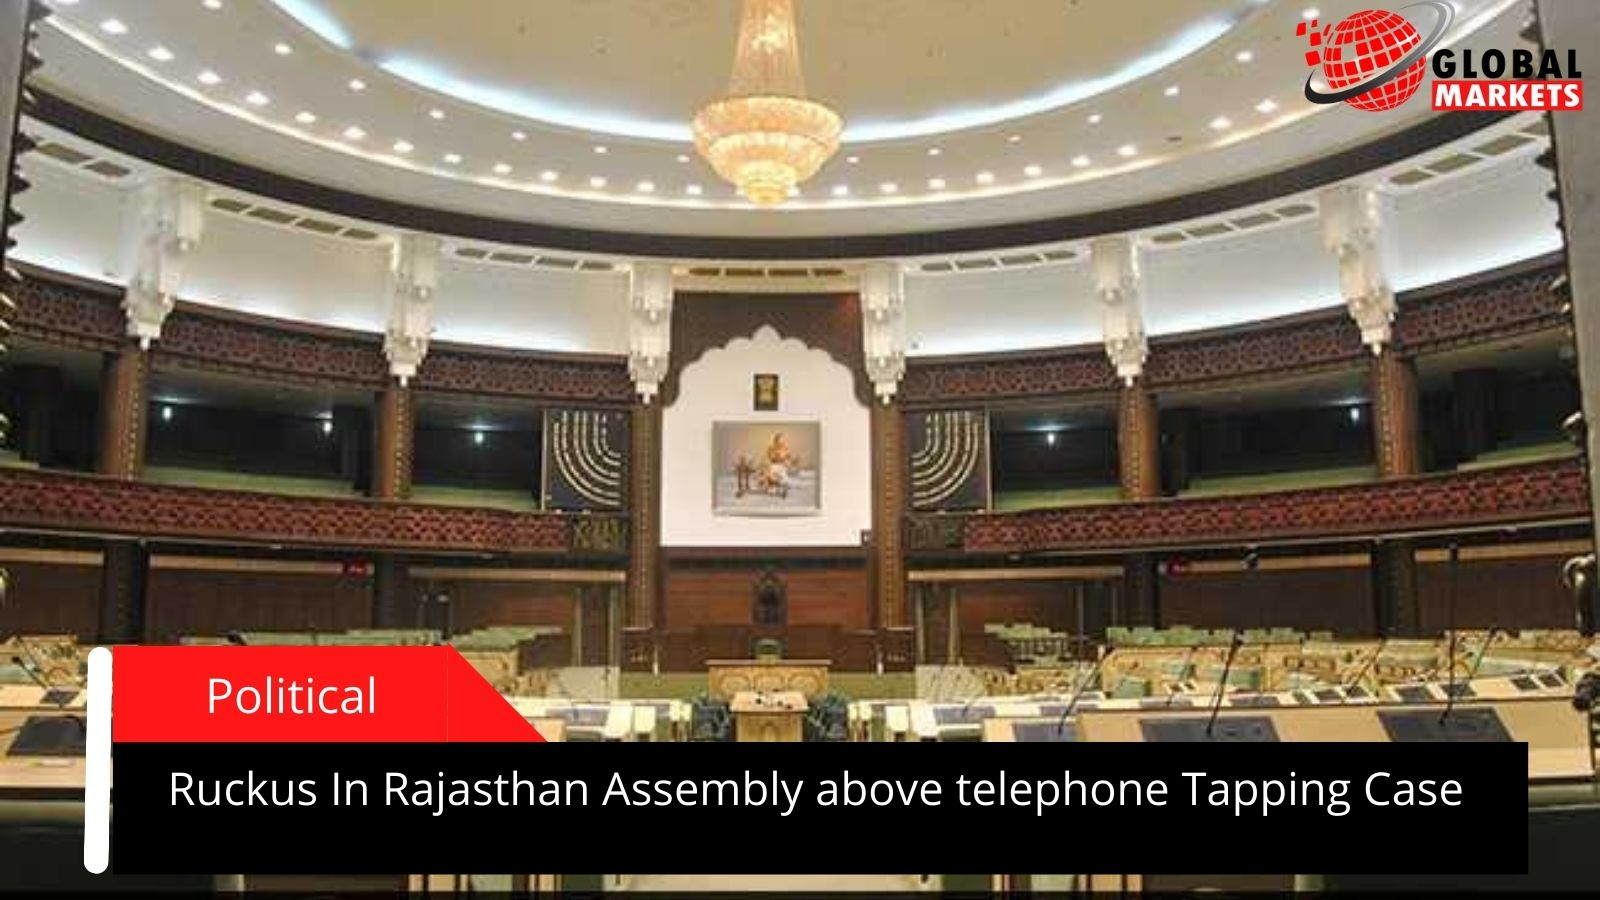 Ruckus In Rajasthan Assembly above telephone Tapping Case